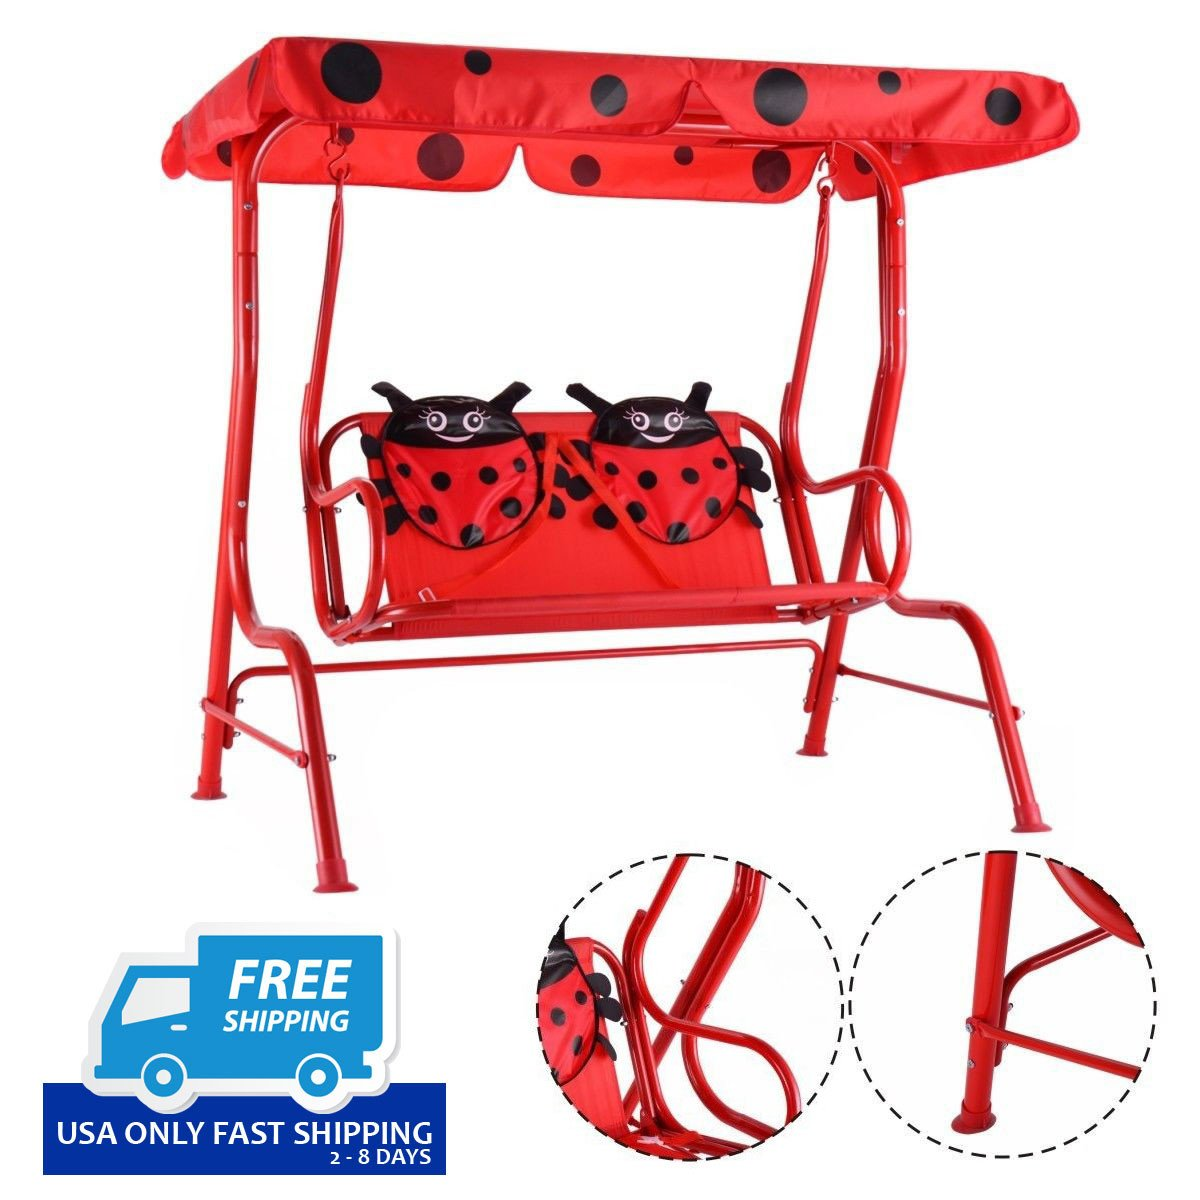 Elegant Kids Patio Swing Chair Children Porch Bench Canopy 2 Person Yard Furniture  Red